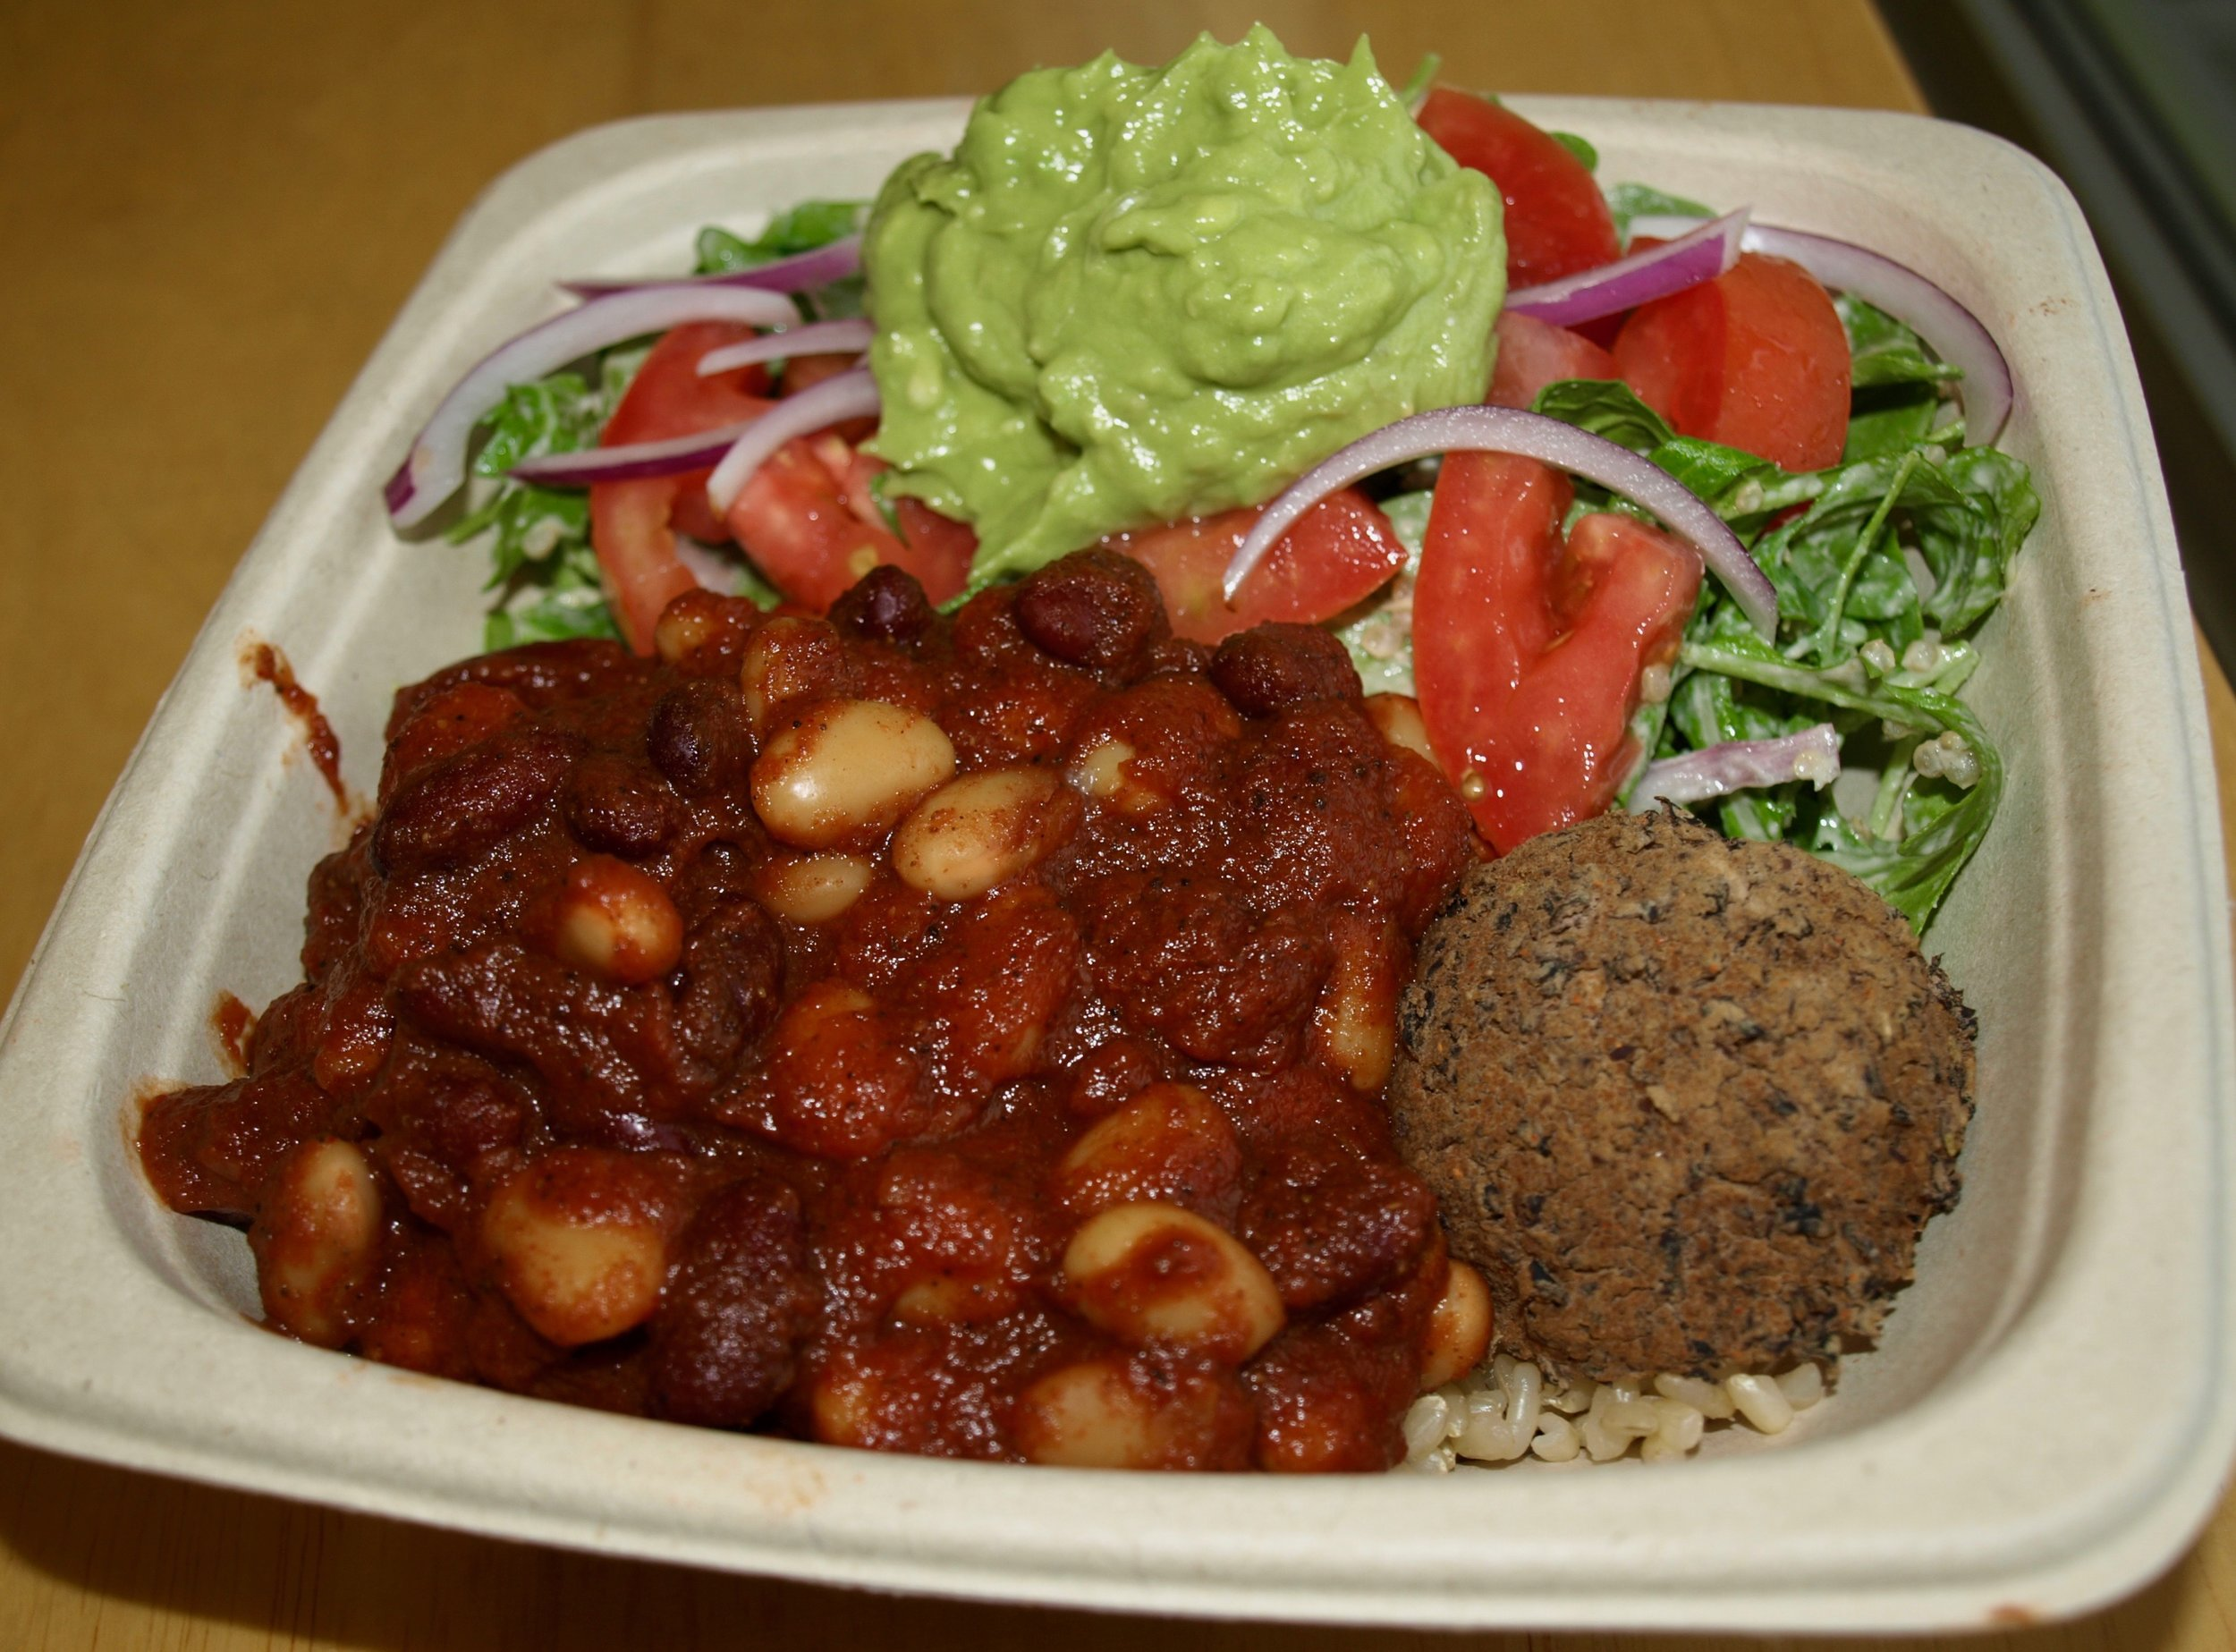 Some Foodie favorites from Plantwise include, half & half of avocado quinoa salad (arugula, quinoa, red onion, avocado mash, tomato, sunflower dijon vinaigrette) and chili bowl (bean chili and beanballs).